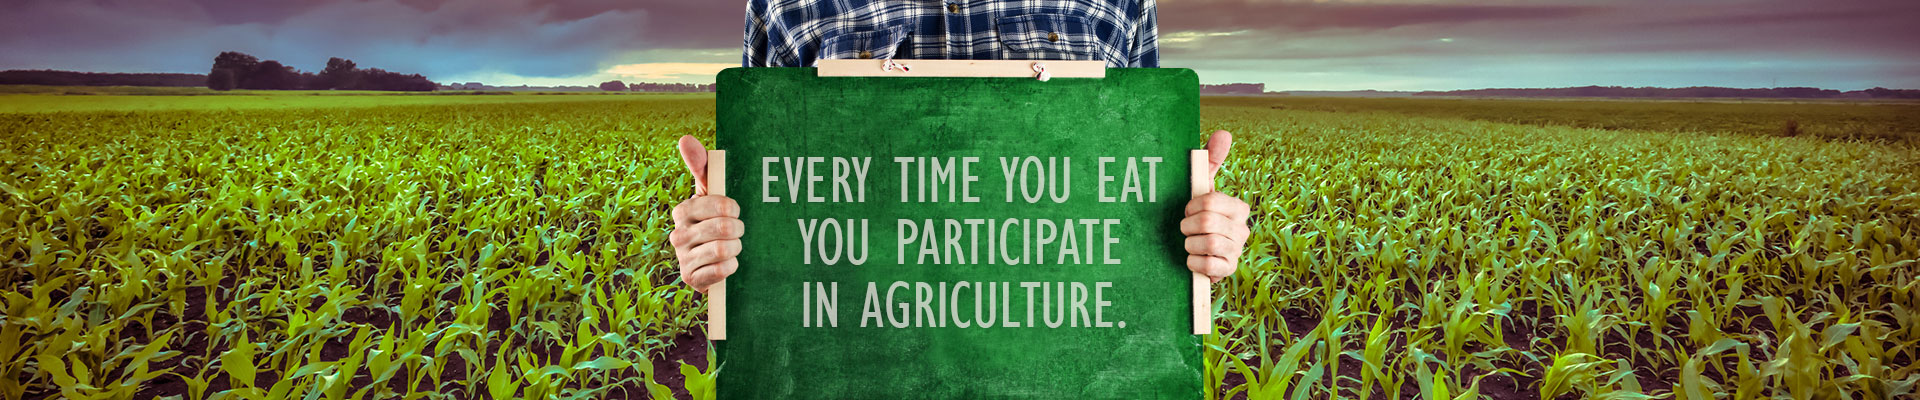 Person holding a sign that says 'Every Time You Eat You Participate In Agriculture.'